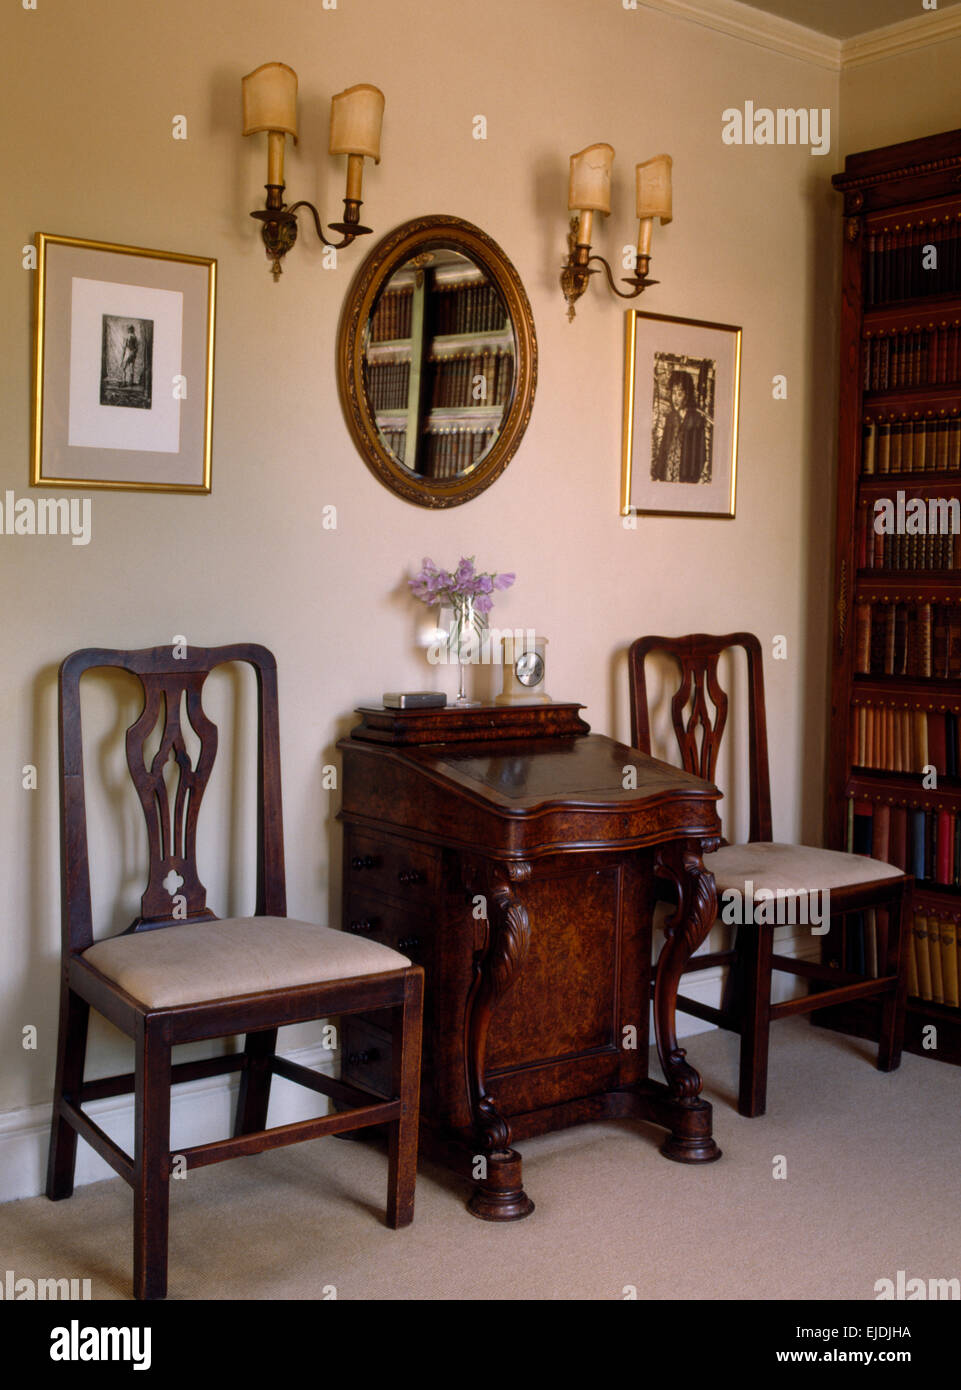 Dining Chairs On Either Side Of Small Antique Desk In Old Fashioned Study